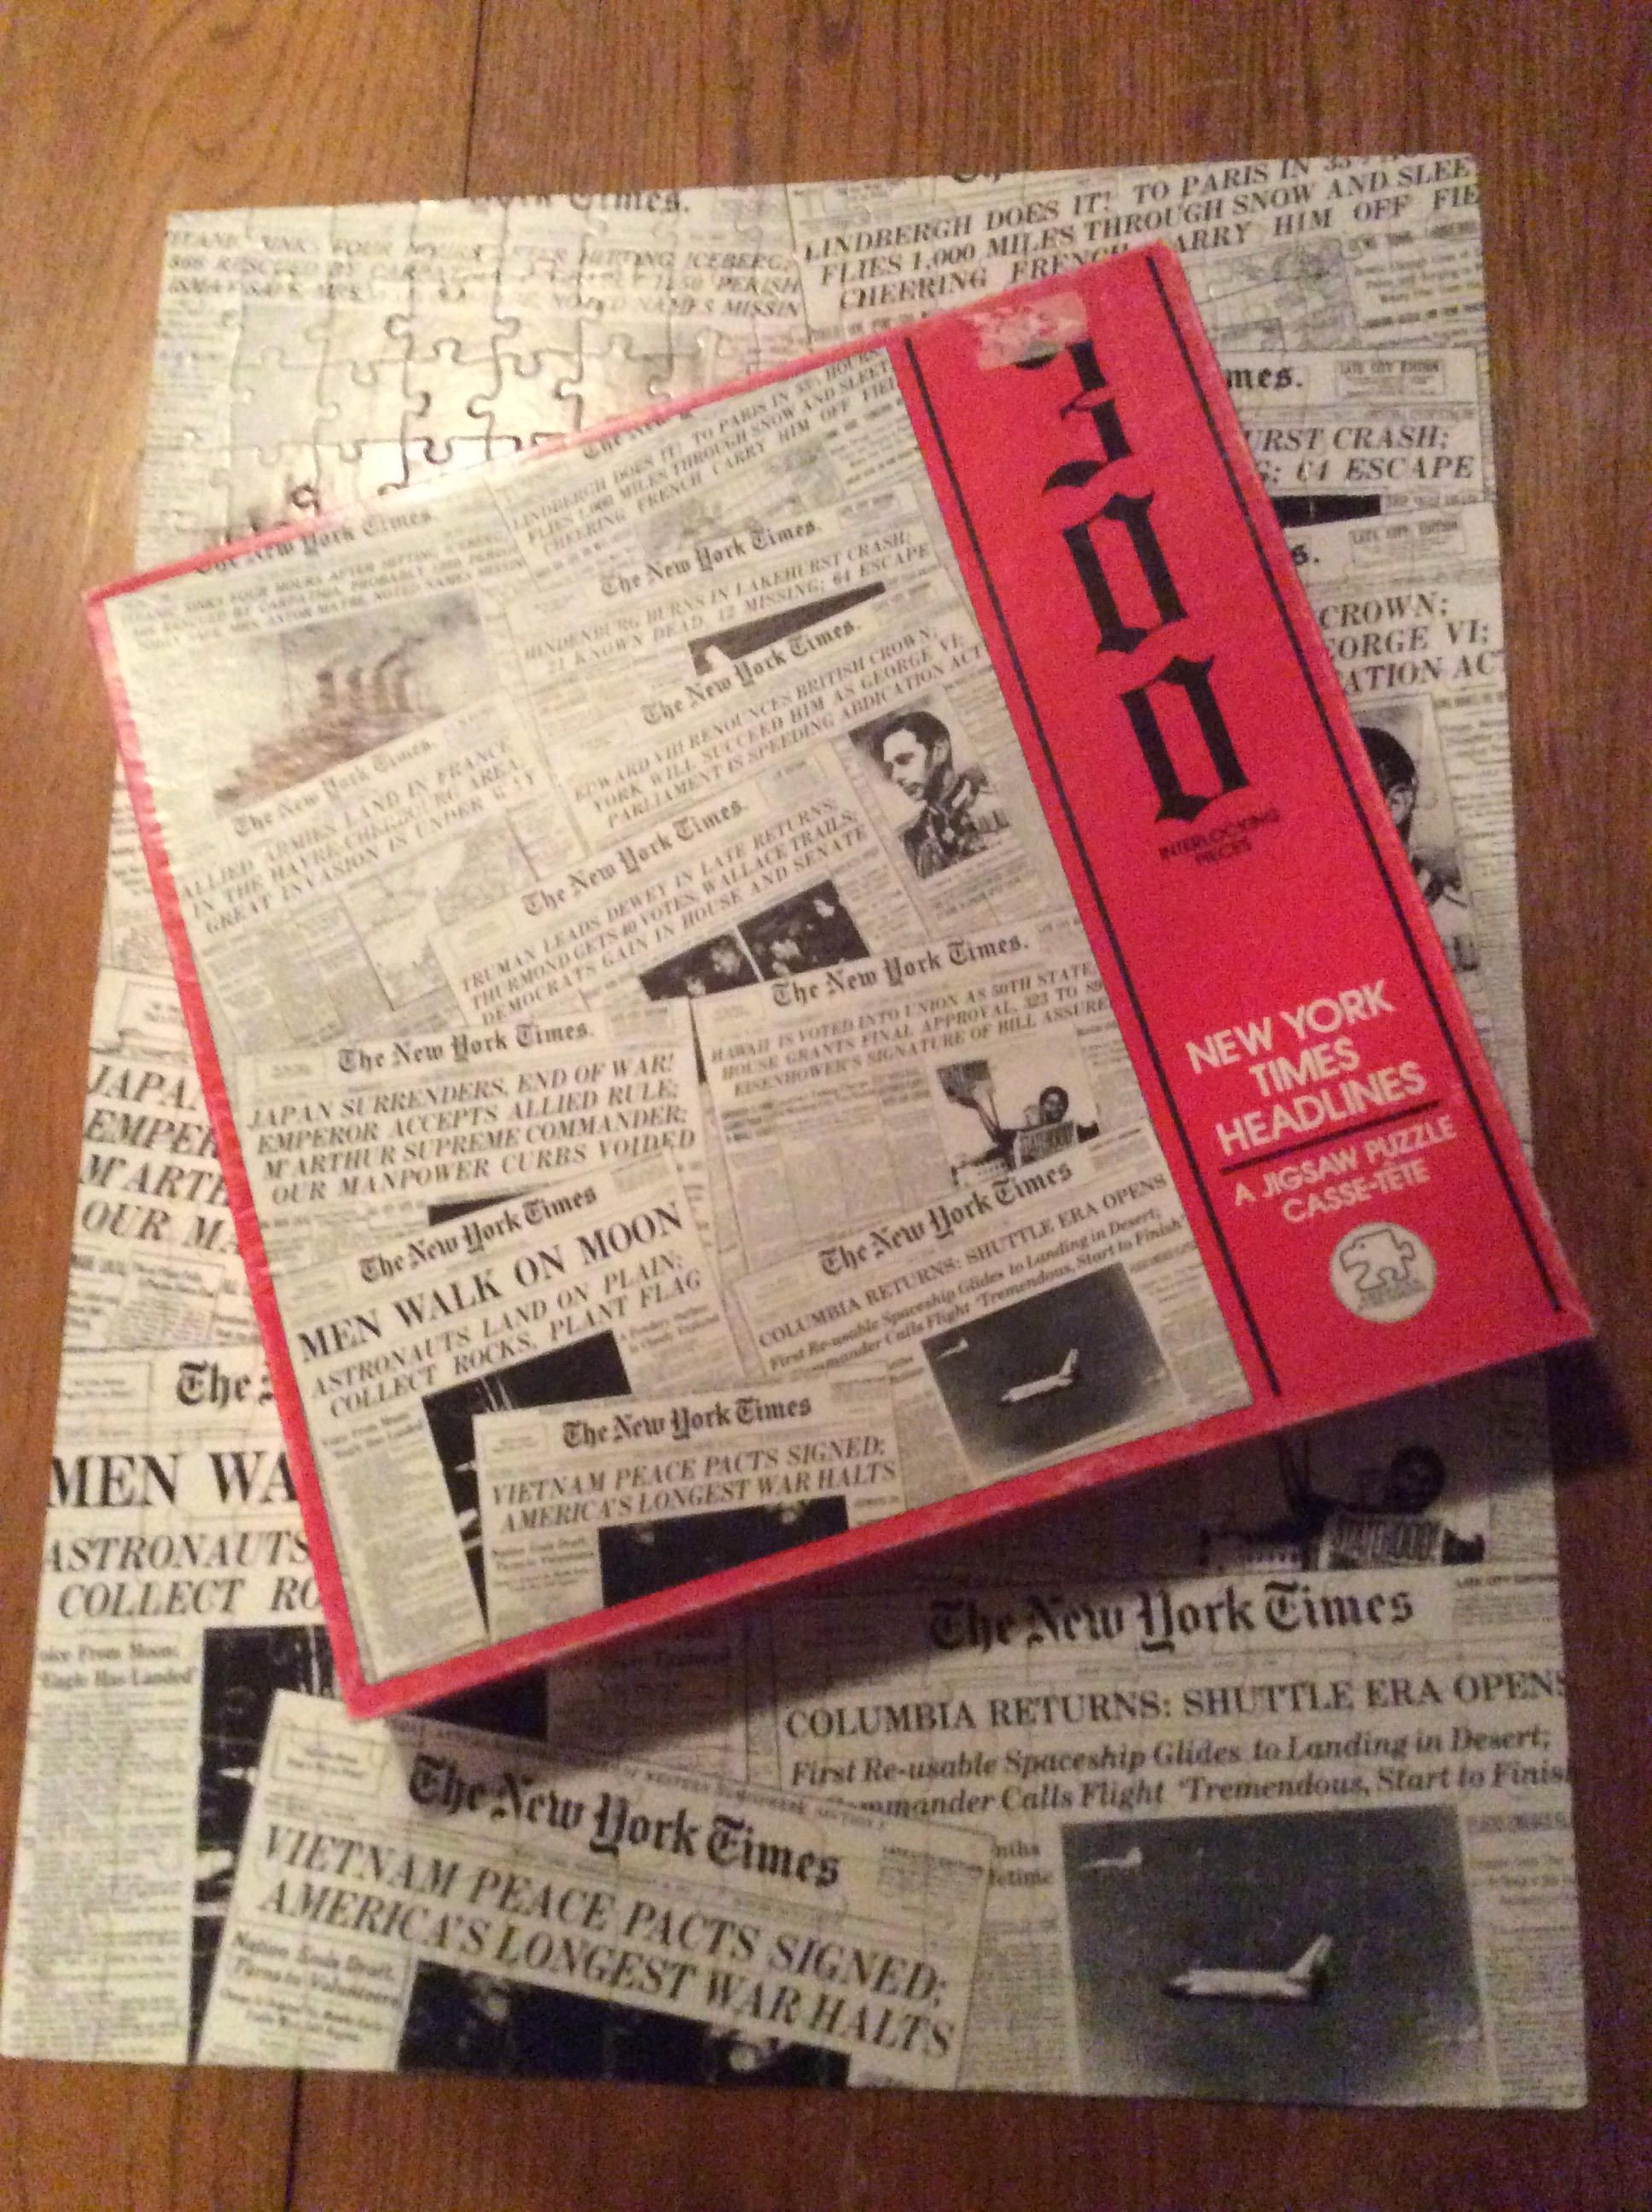 Vintage New York Times Headlines Puzzle COMPLETE Etsy